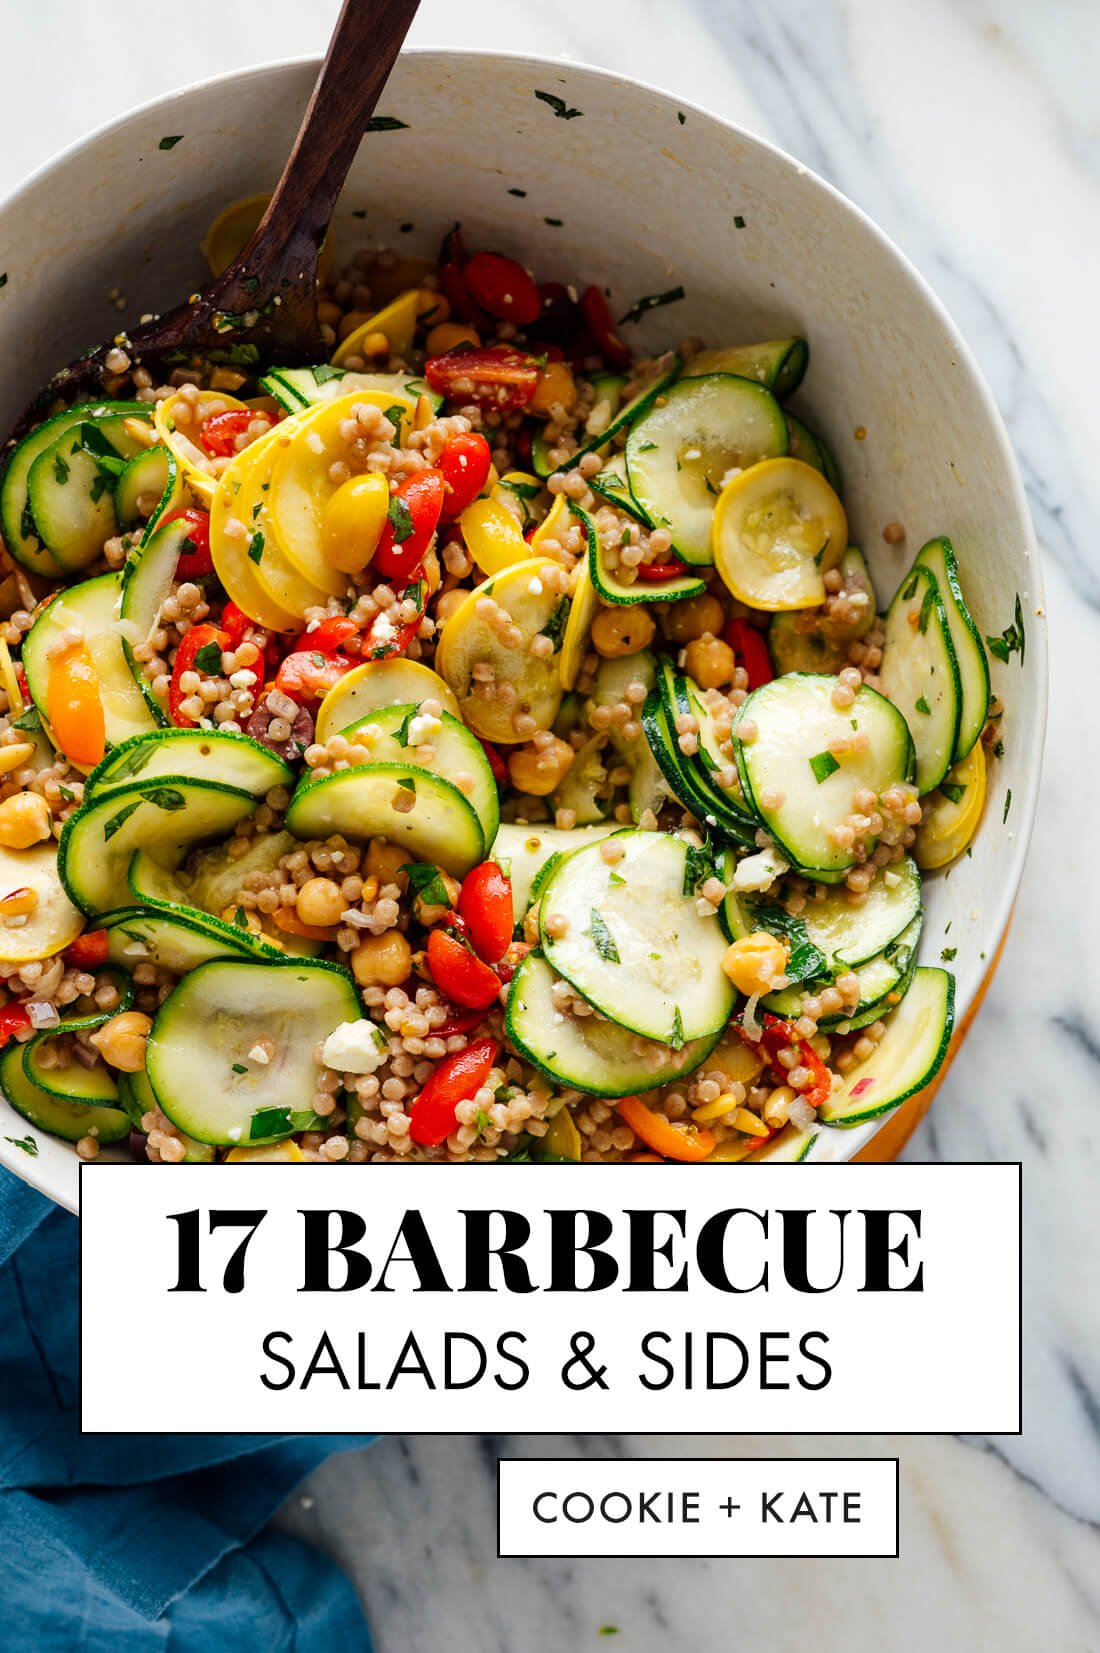 barbecue salads and sides